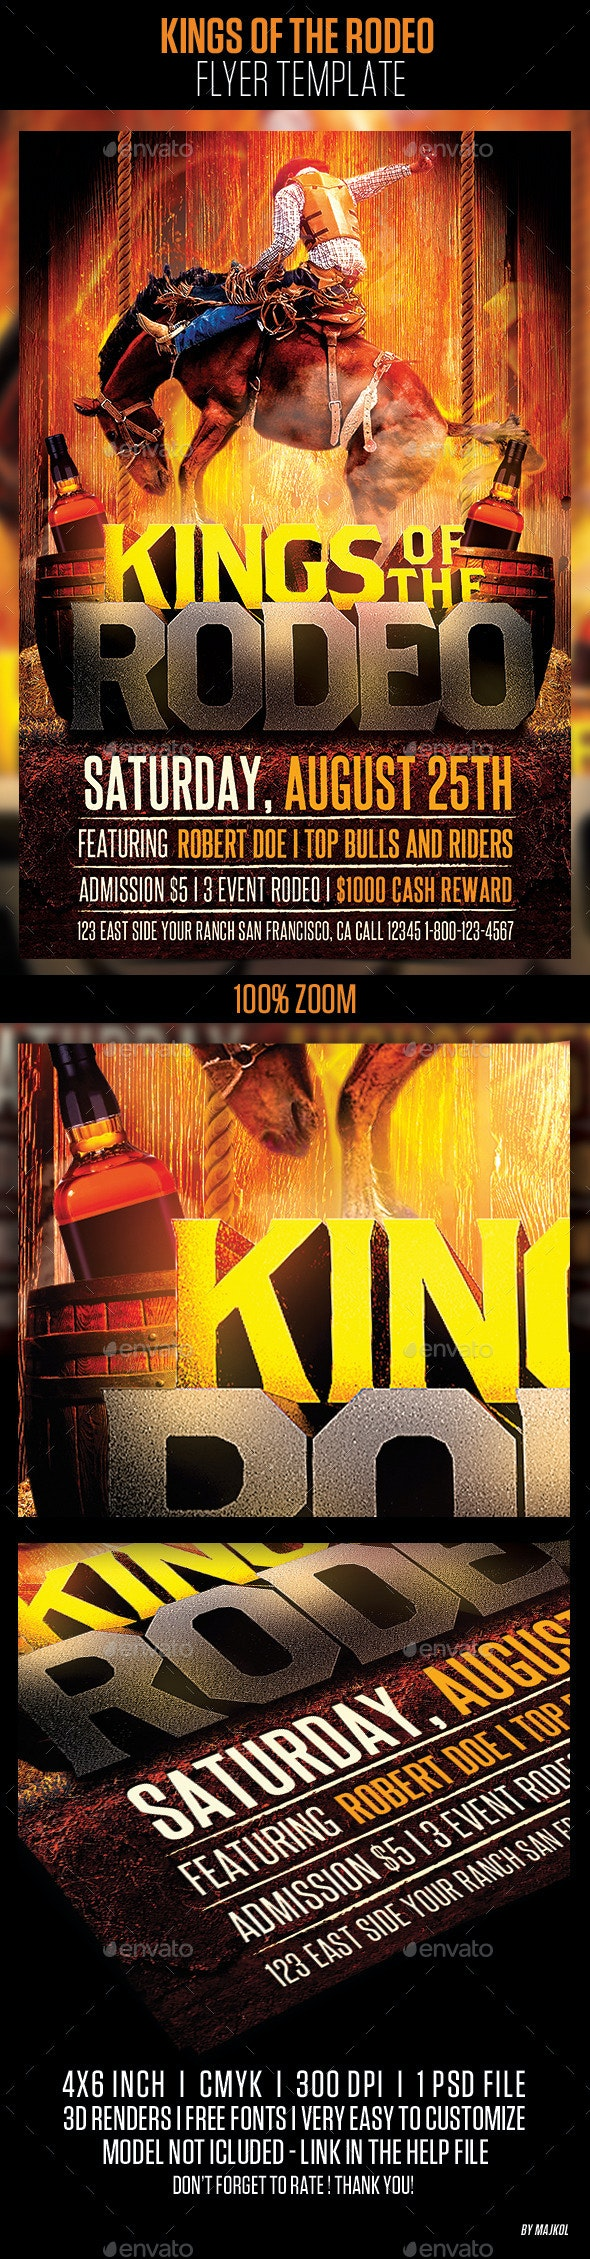 Kings of the Rodeo Flyer Template - Events Flyers